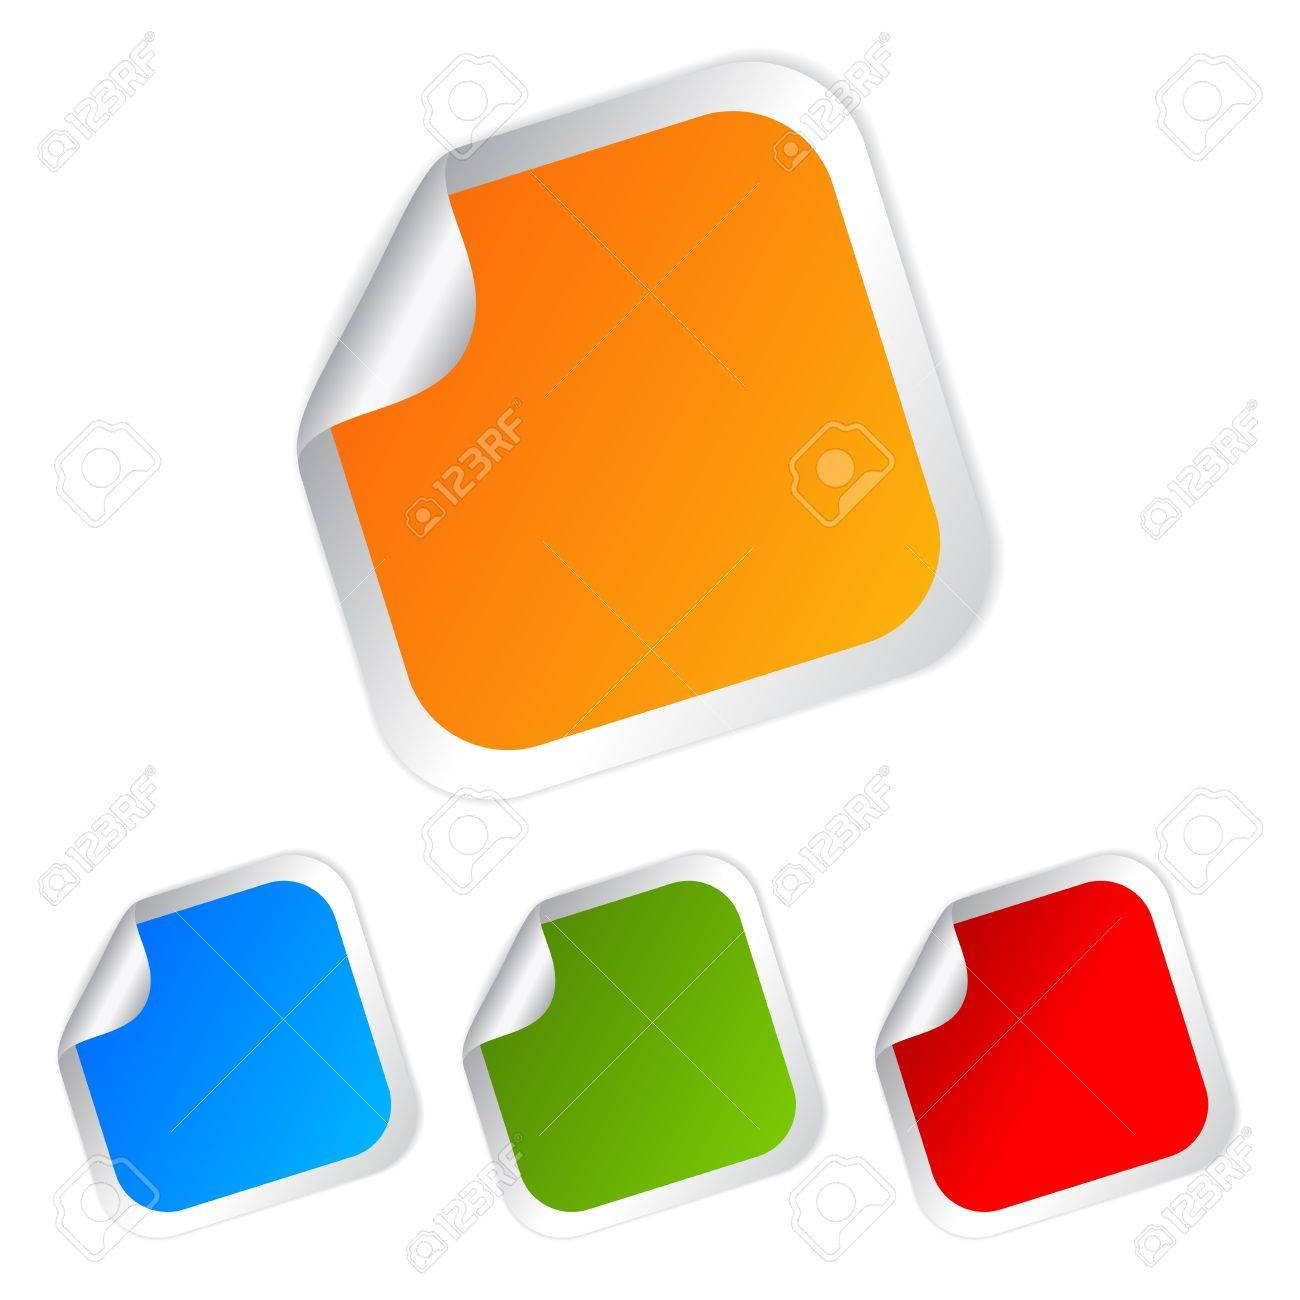 Square stickers set, vector illustration Stock Vector - 15198312